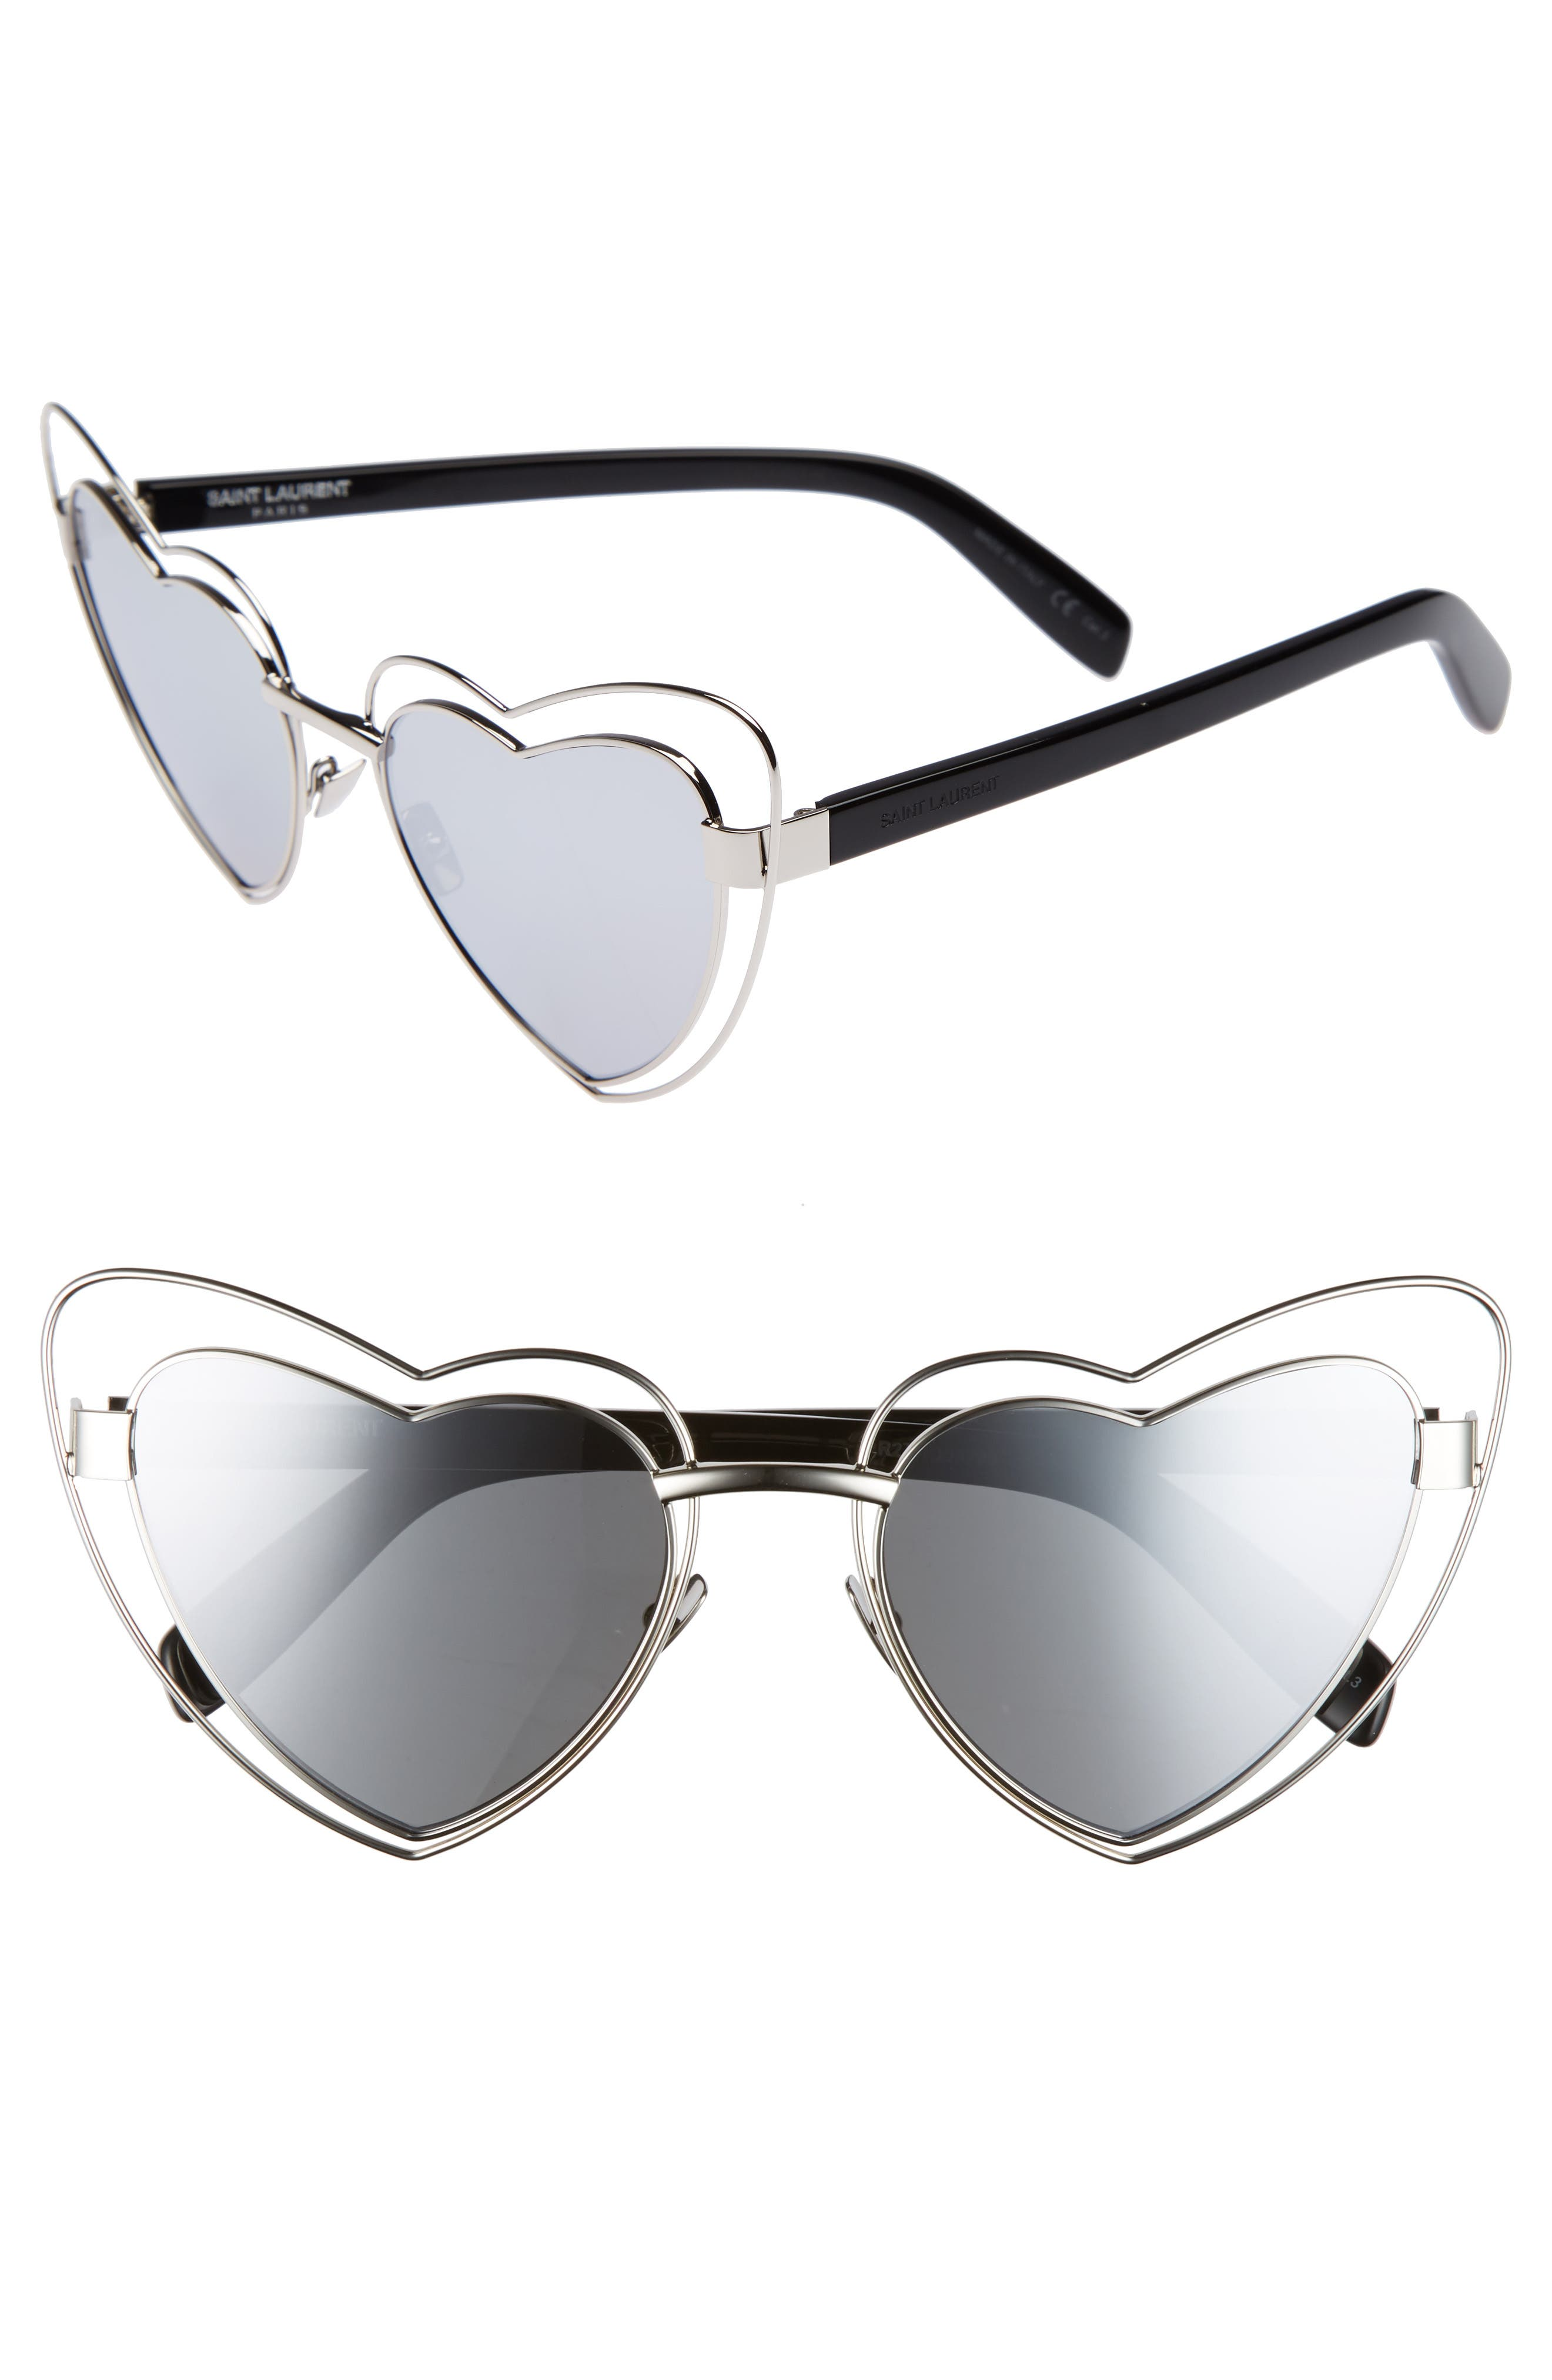 SL197 Loulou 57mm Heart Shaped Sunglasses,                         Main,                         color, Silver